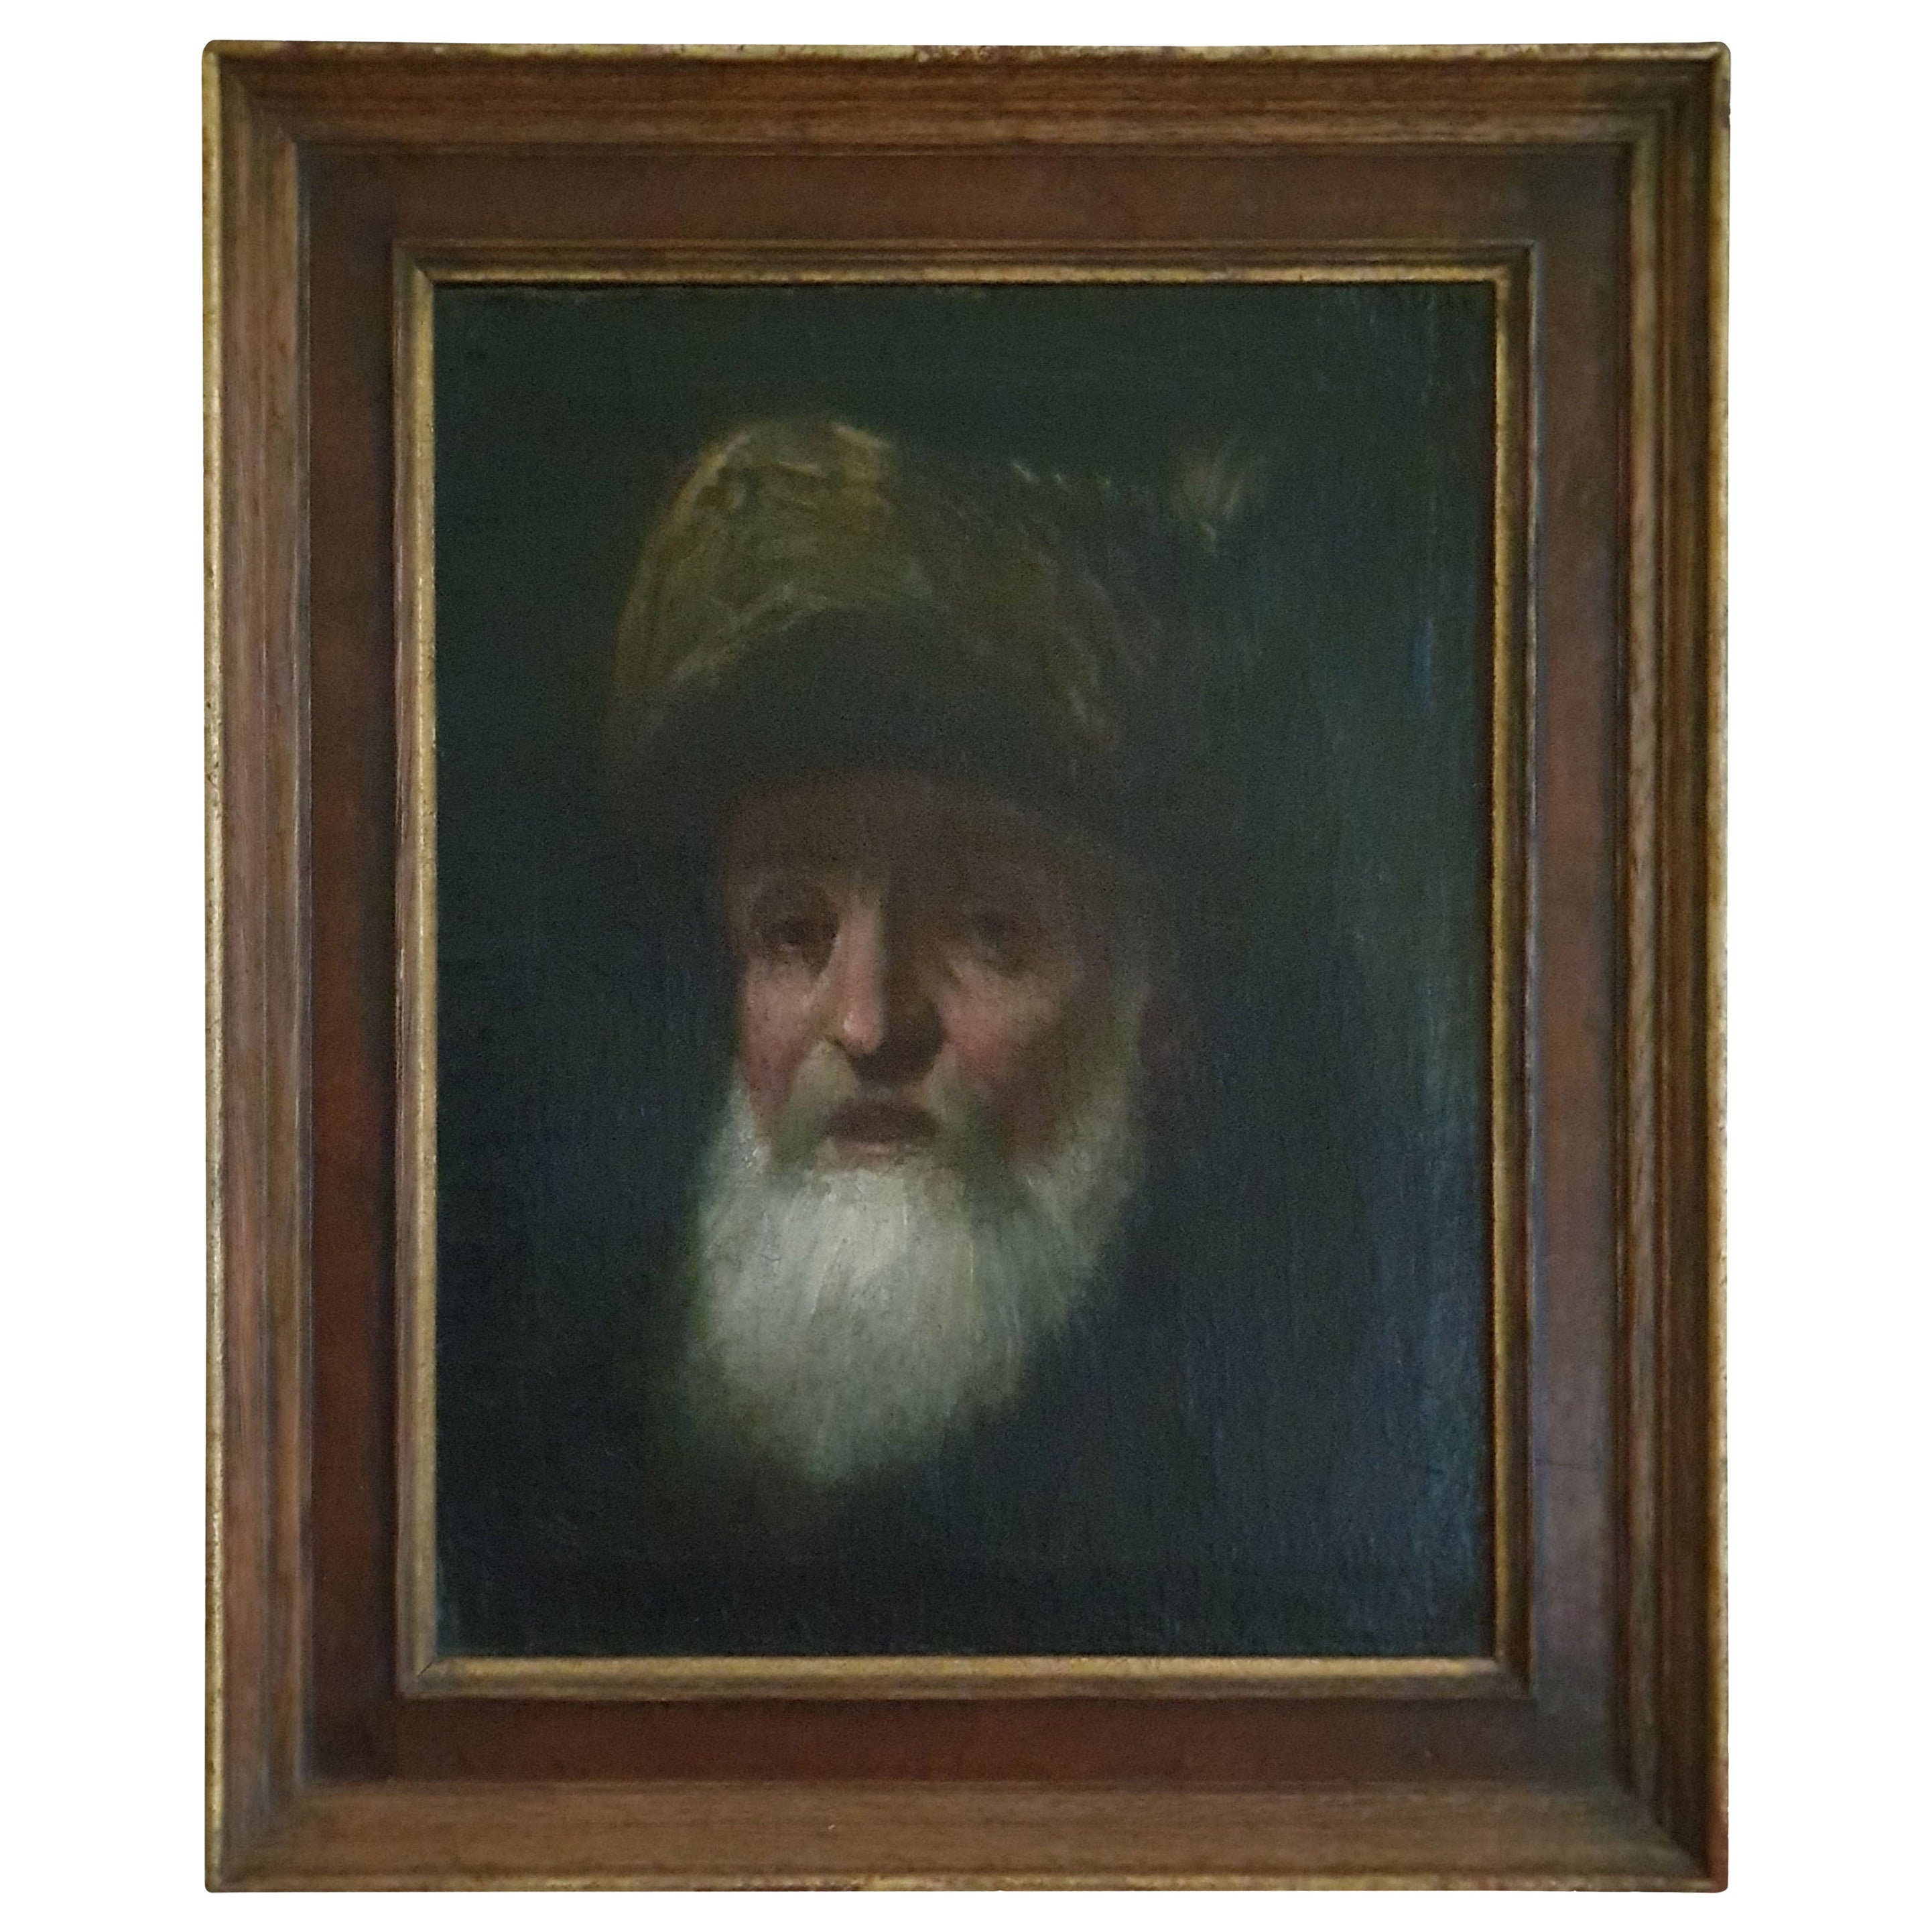 Hand Painted Dutch Painting Executed In The Style of Rembrandt Depicting A Rabbi